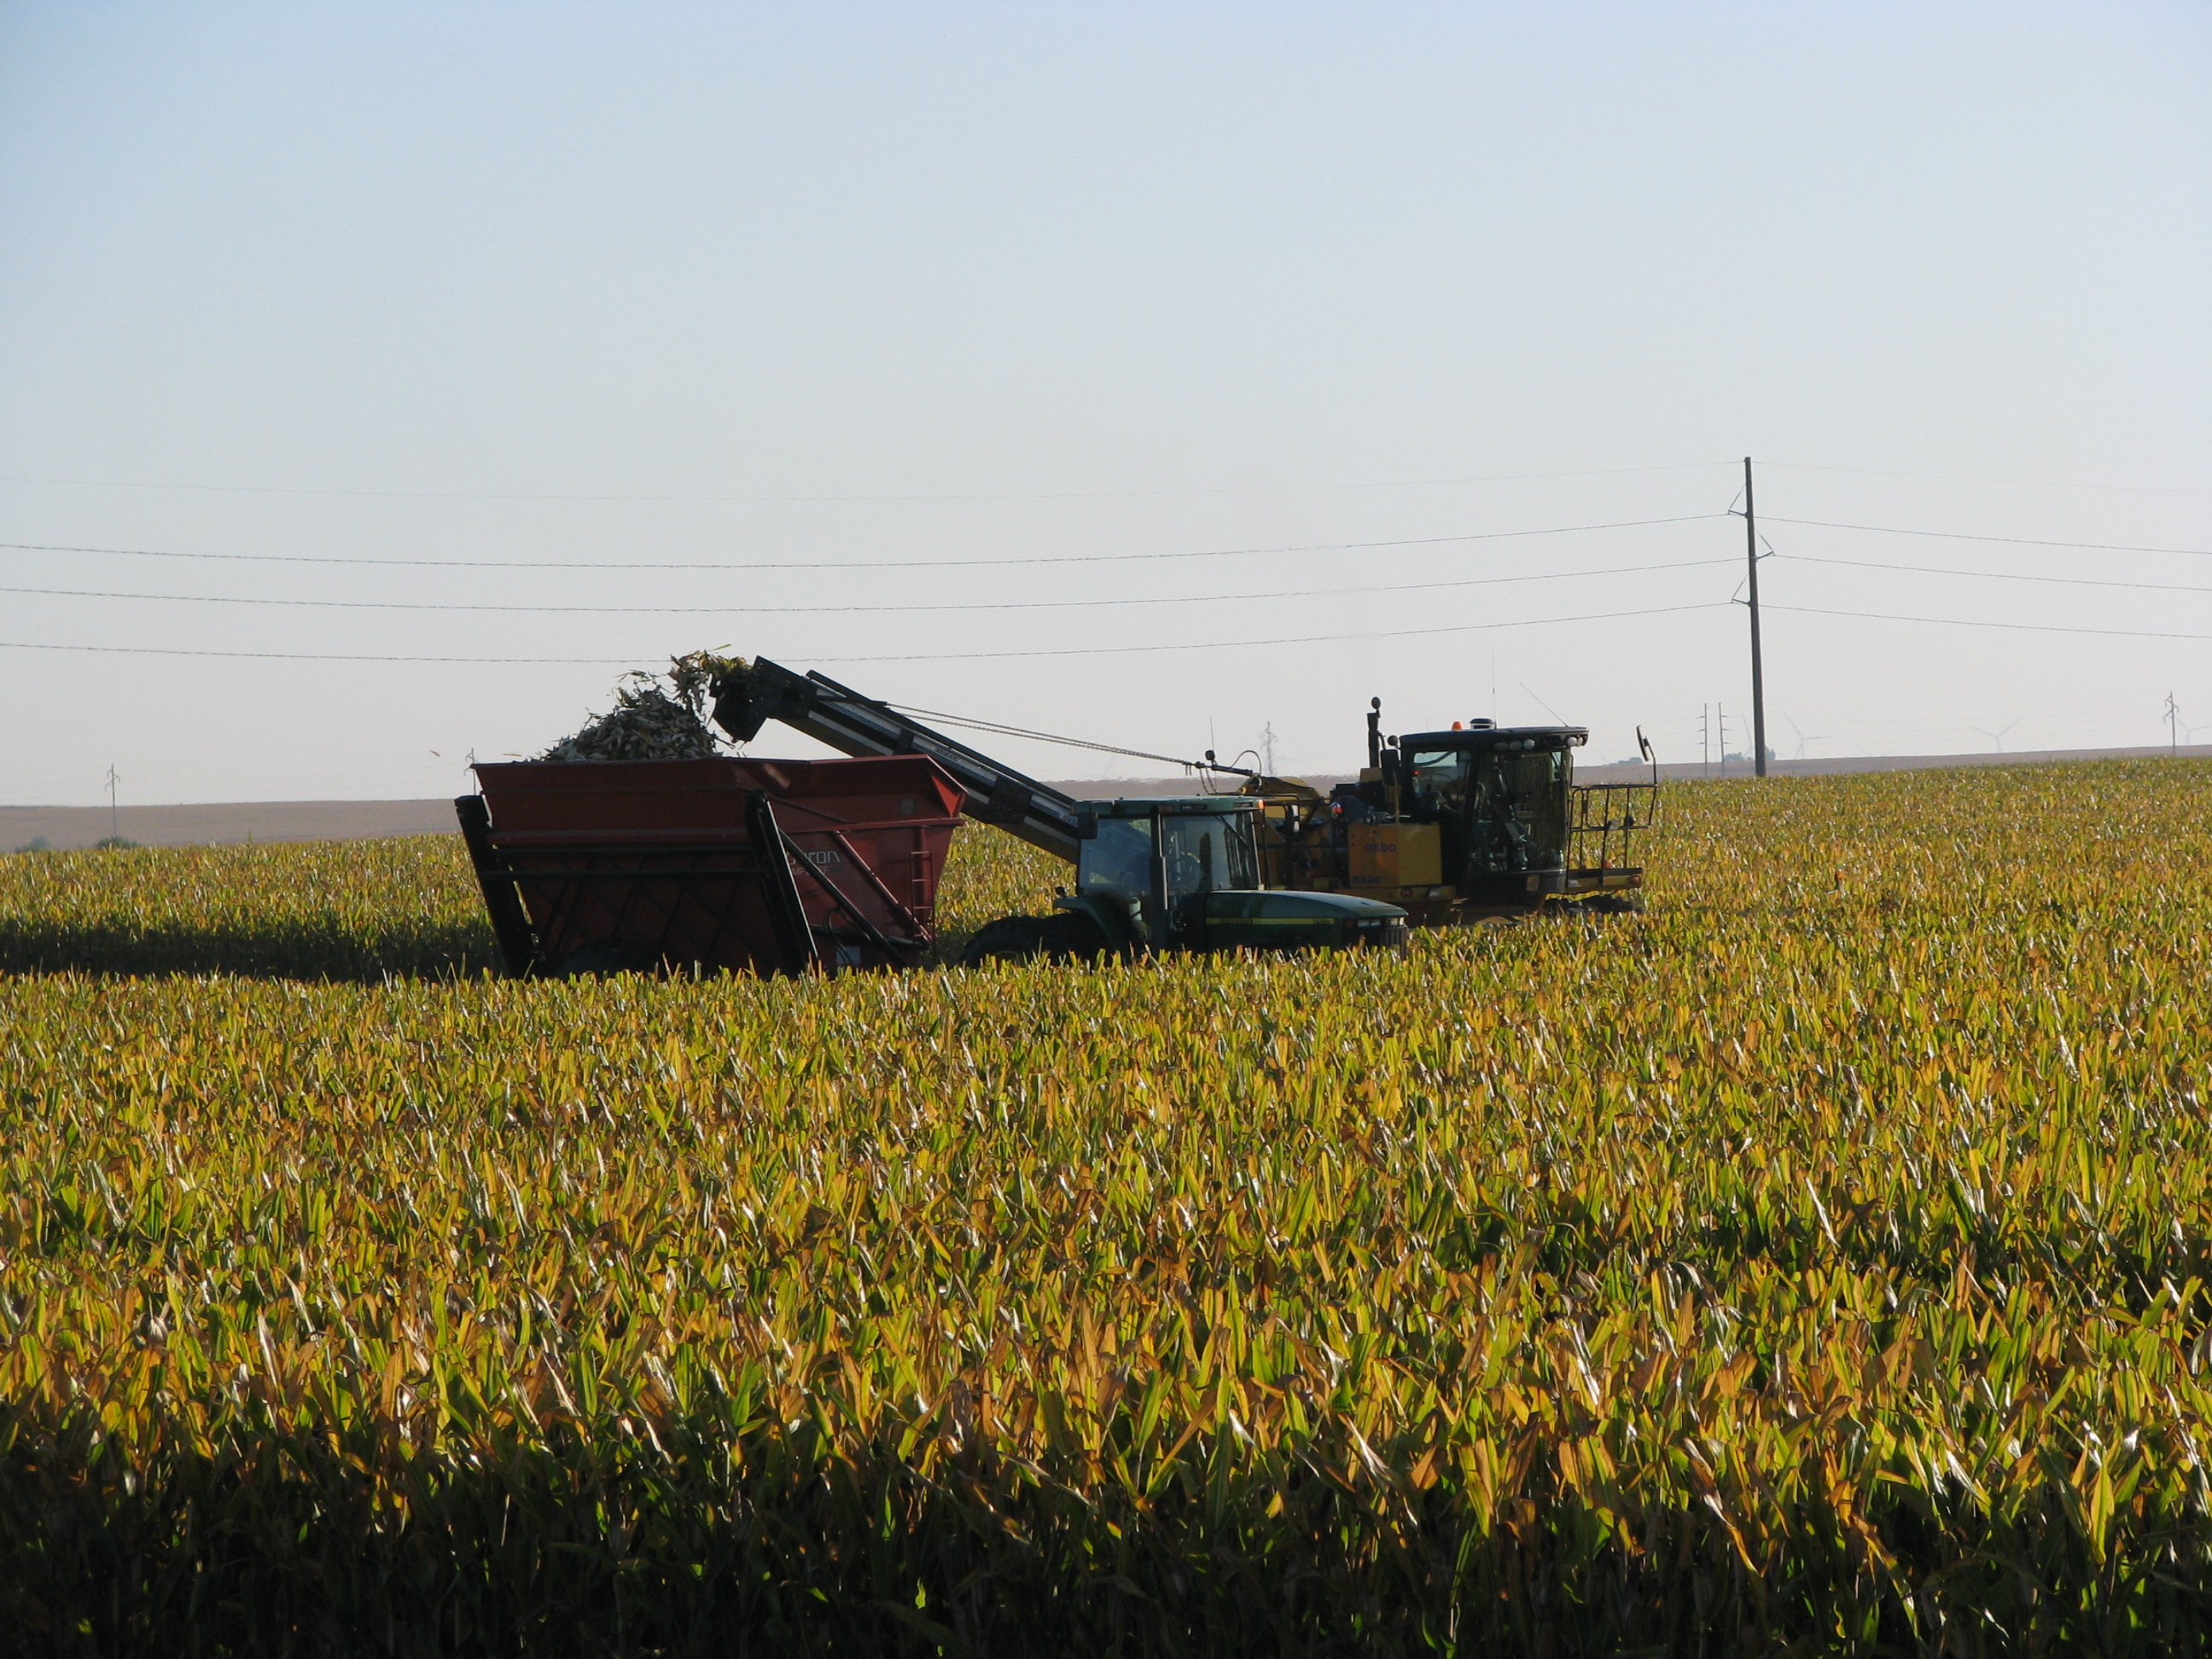 Combine and tractor harvesting corn.